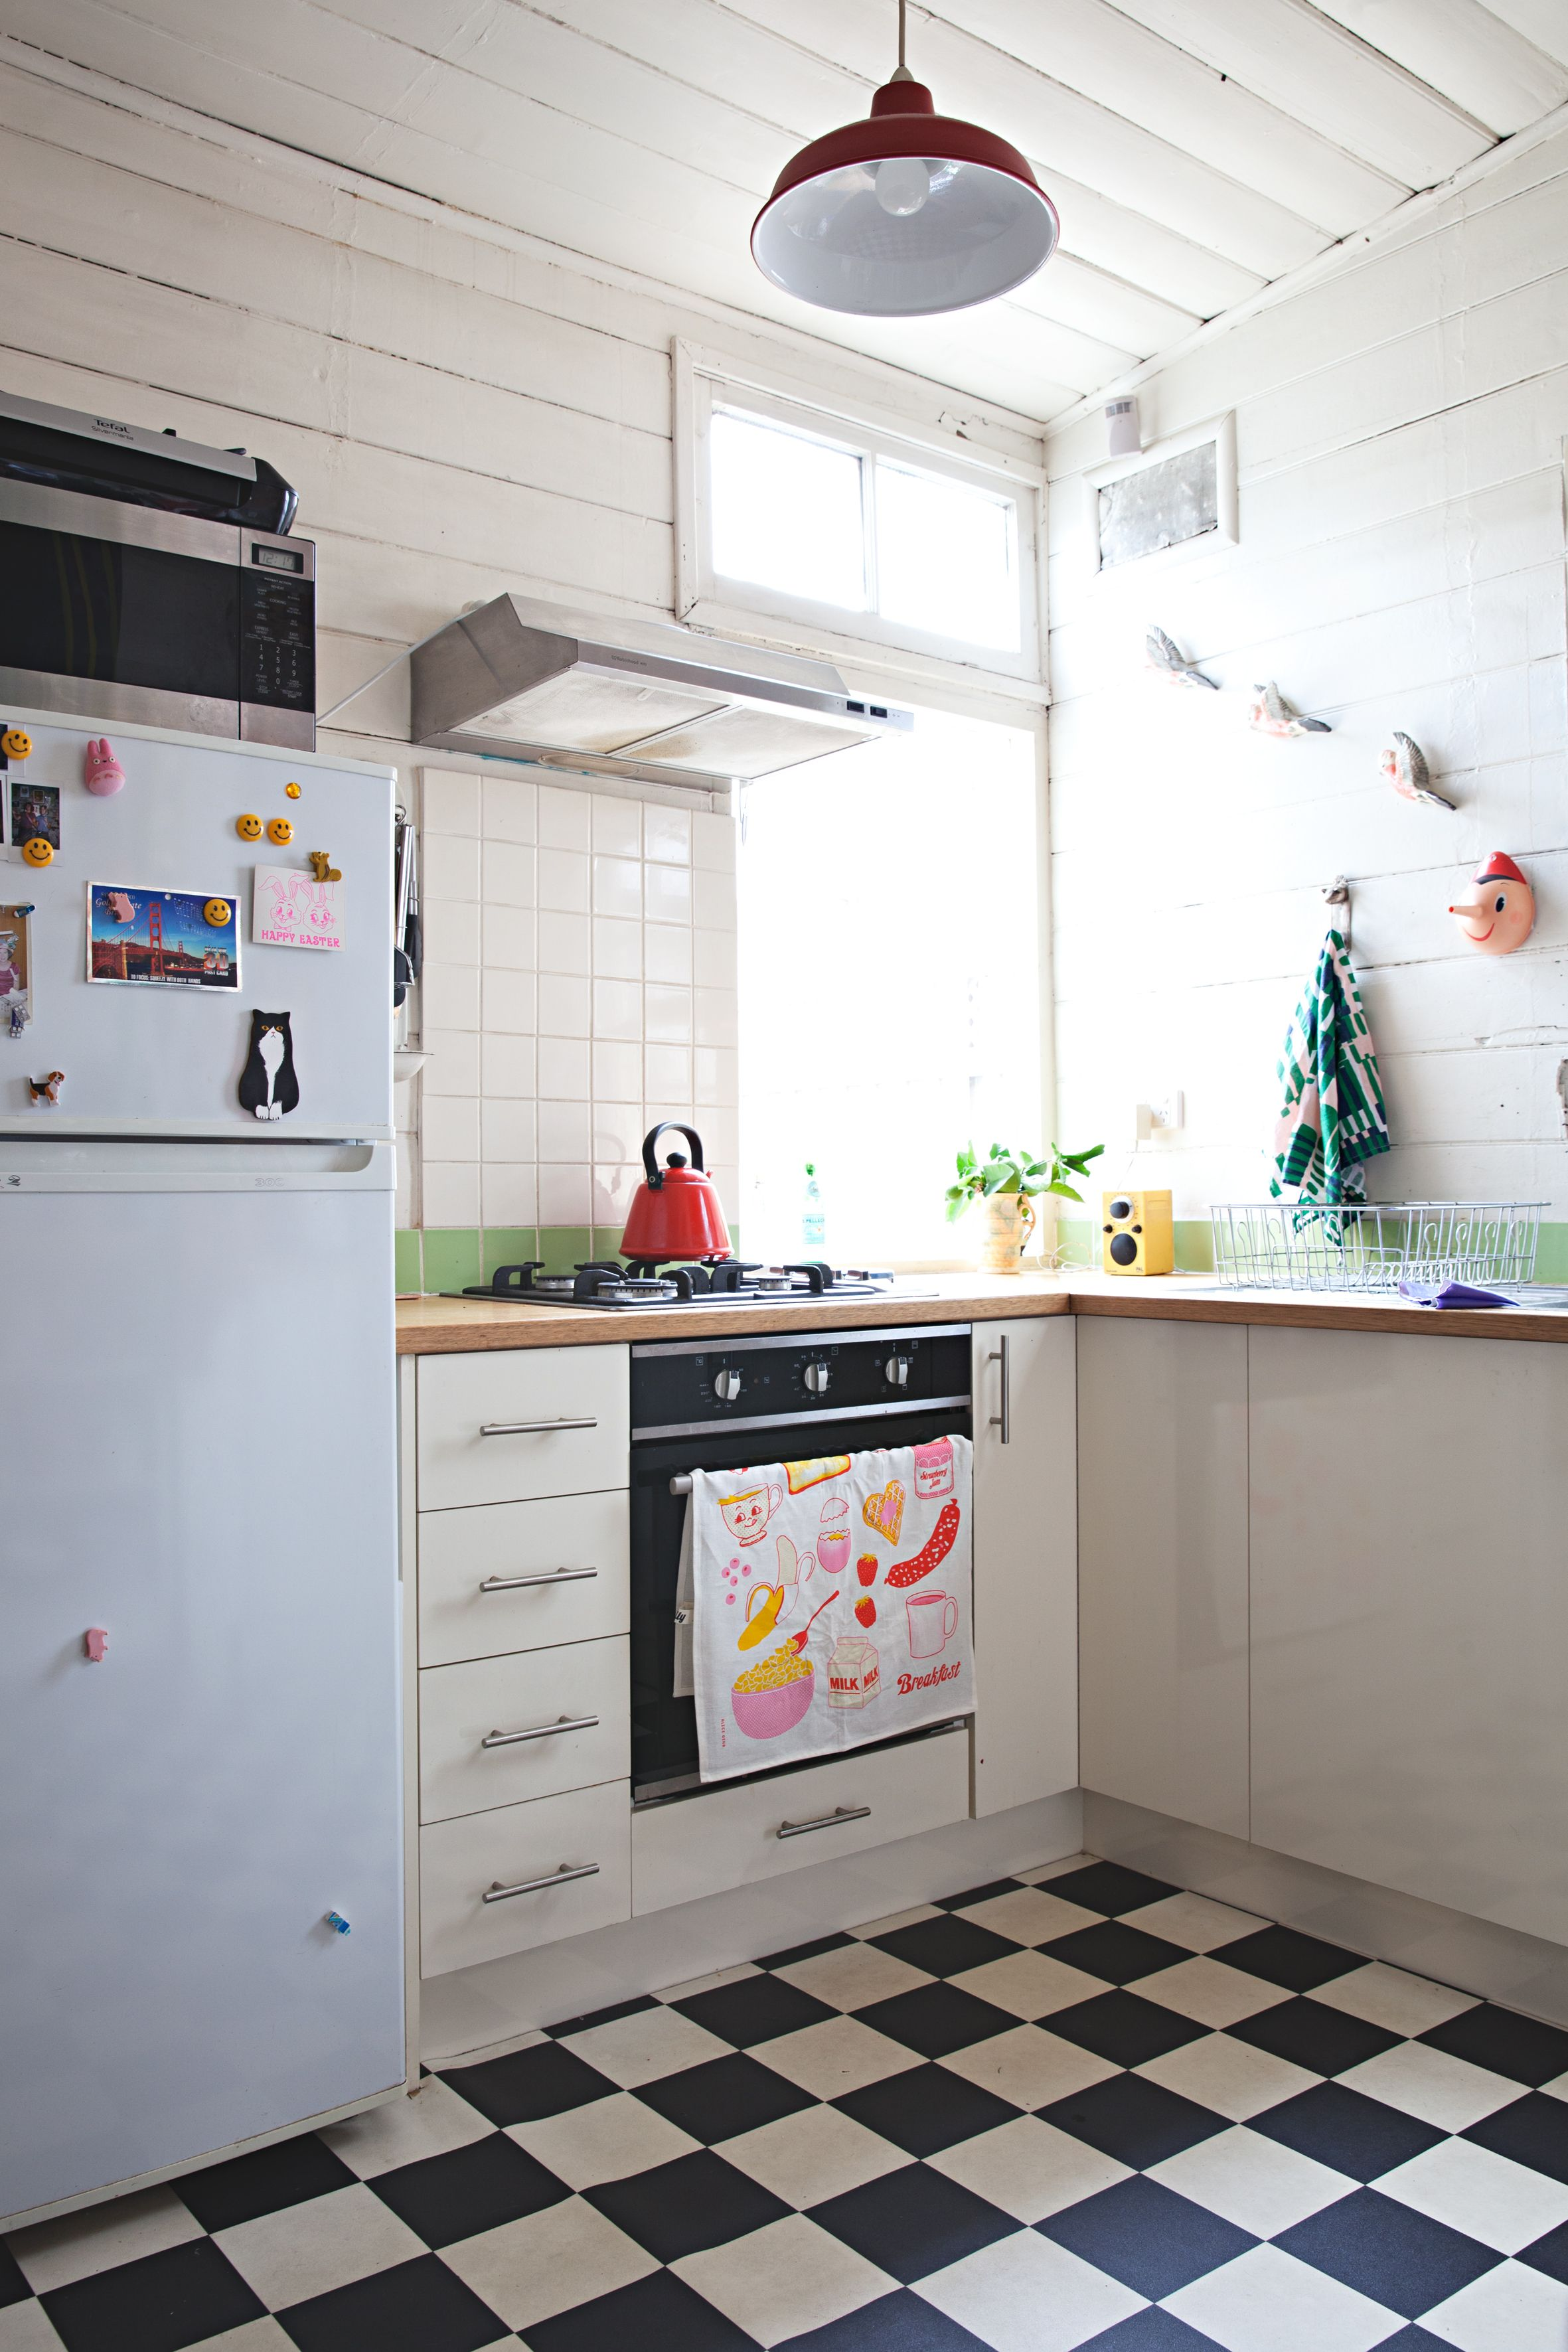 Sisters share a playful patterned melbourne home kitchens house